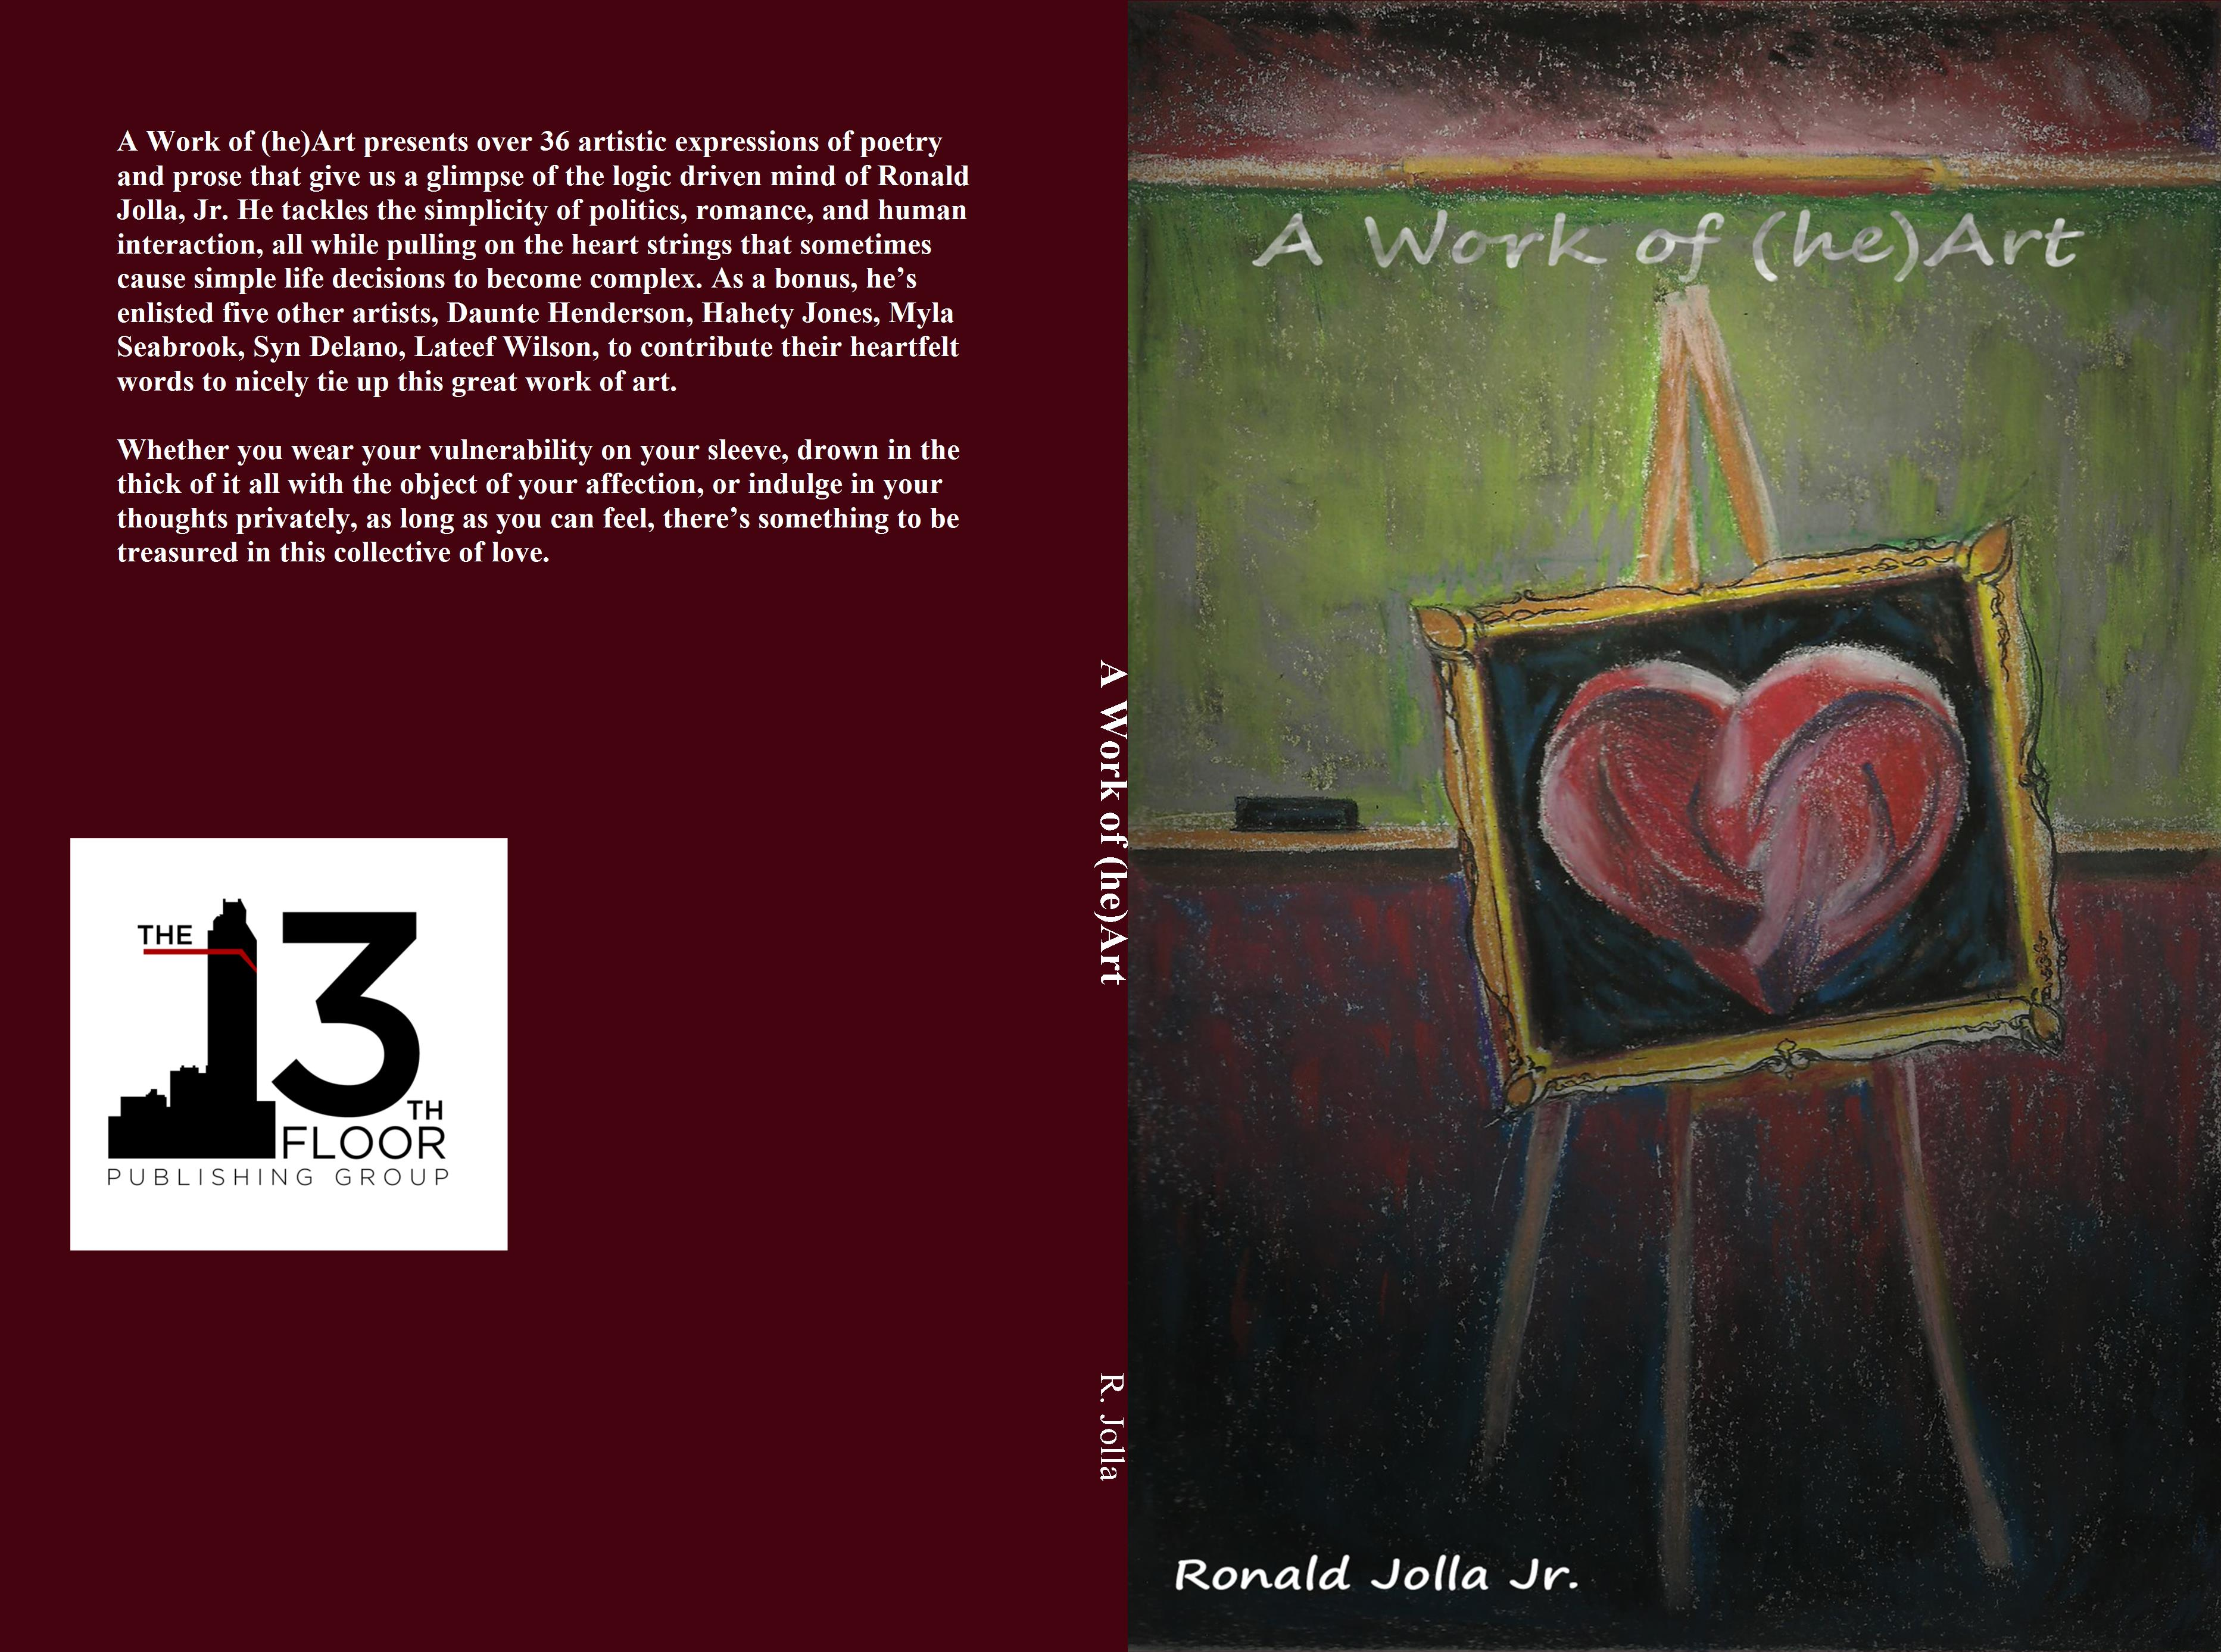 A Work of (he)Art cover image